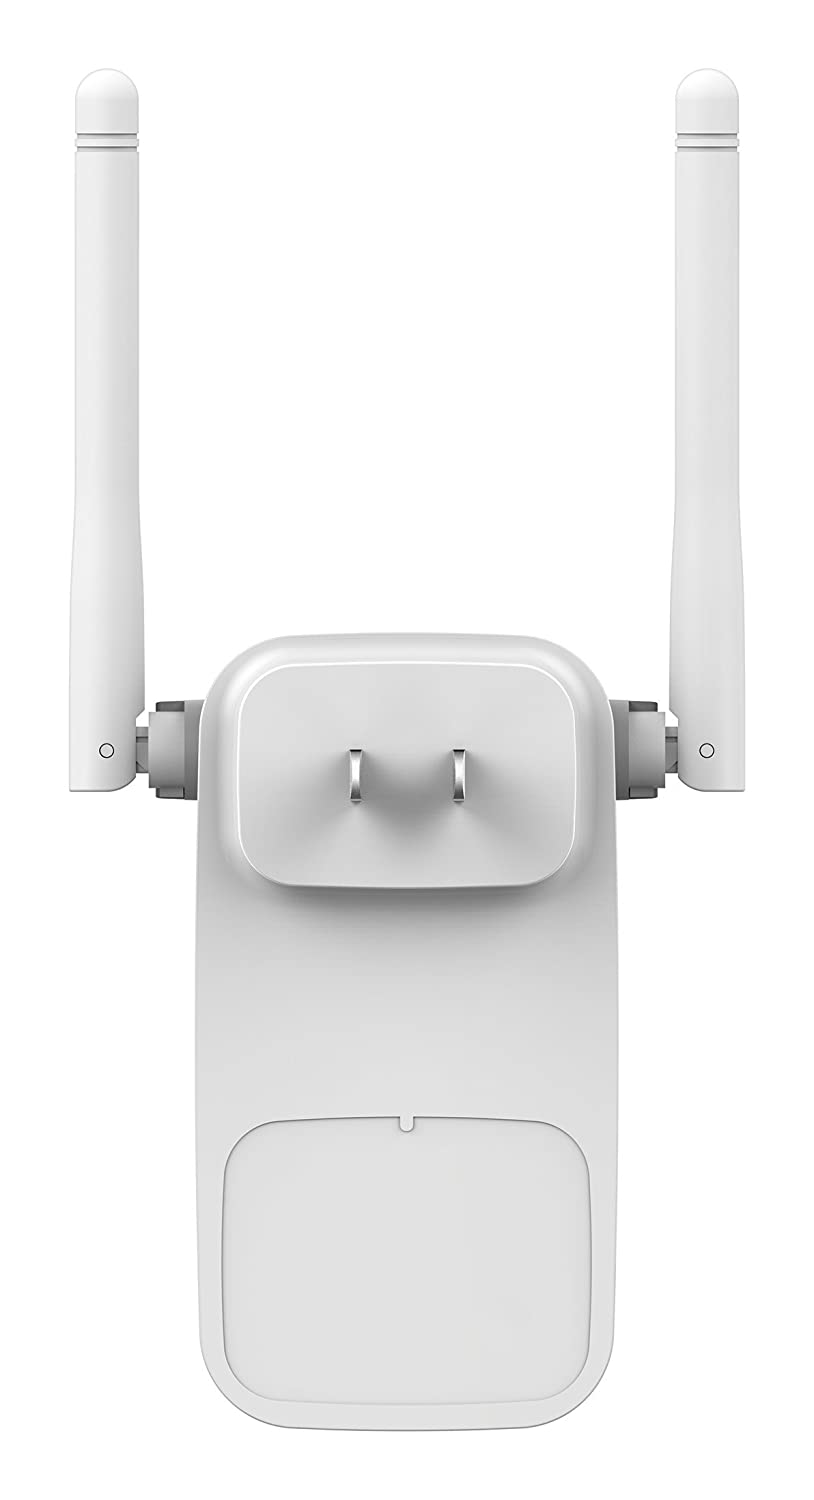 D Link N300 Wifi Range Extender Wireless Repeater Dap Century Internet Connection Diagram 1325 Us Computers Accessories